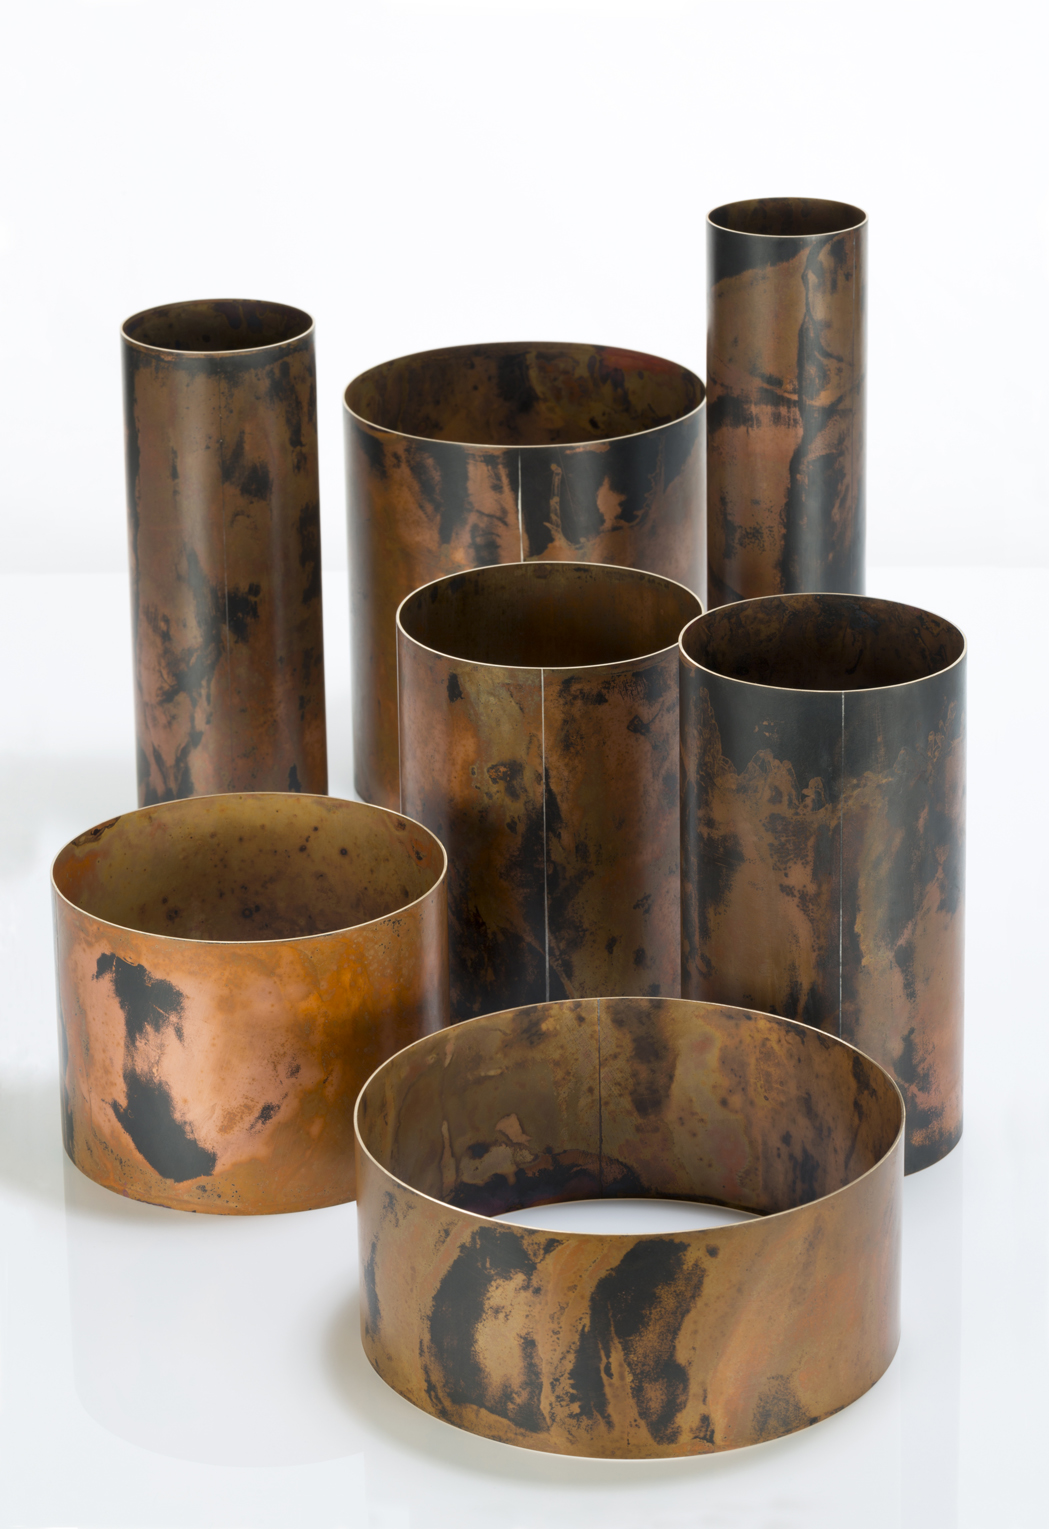 Juliette_Bigley_Cylinders_patinated_gilding_metal_2018_10.JPG